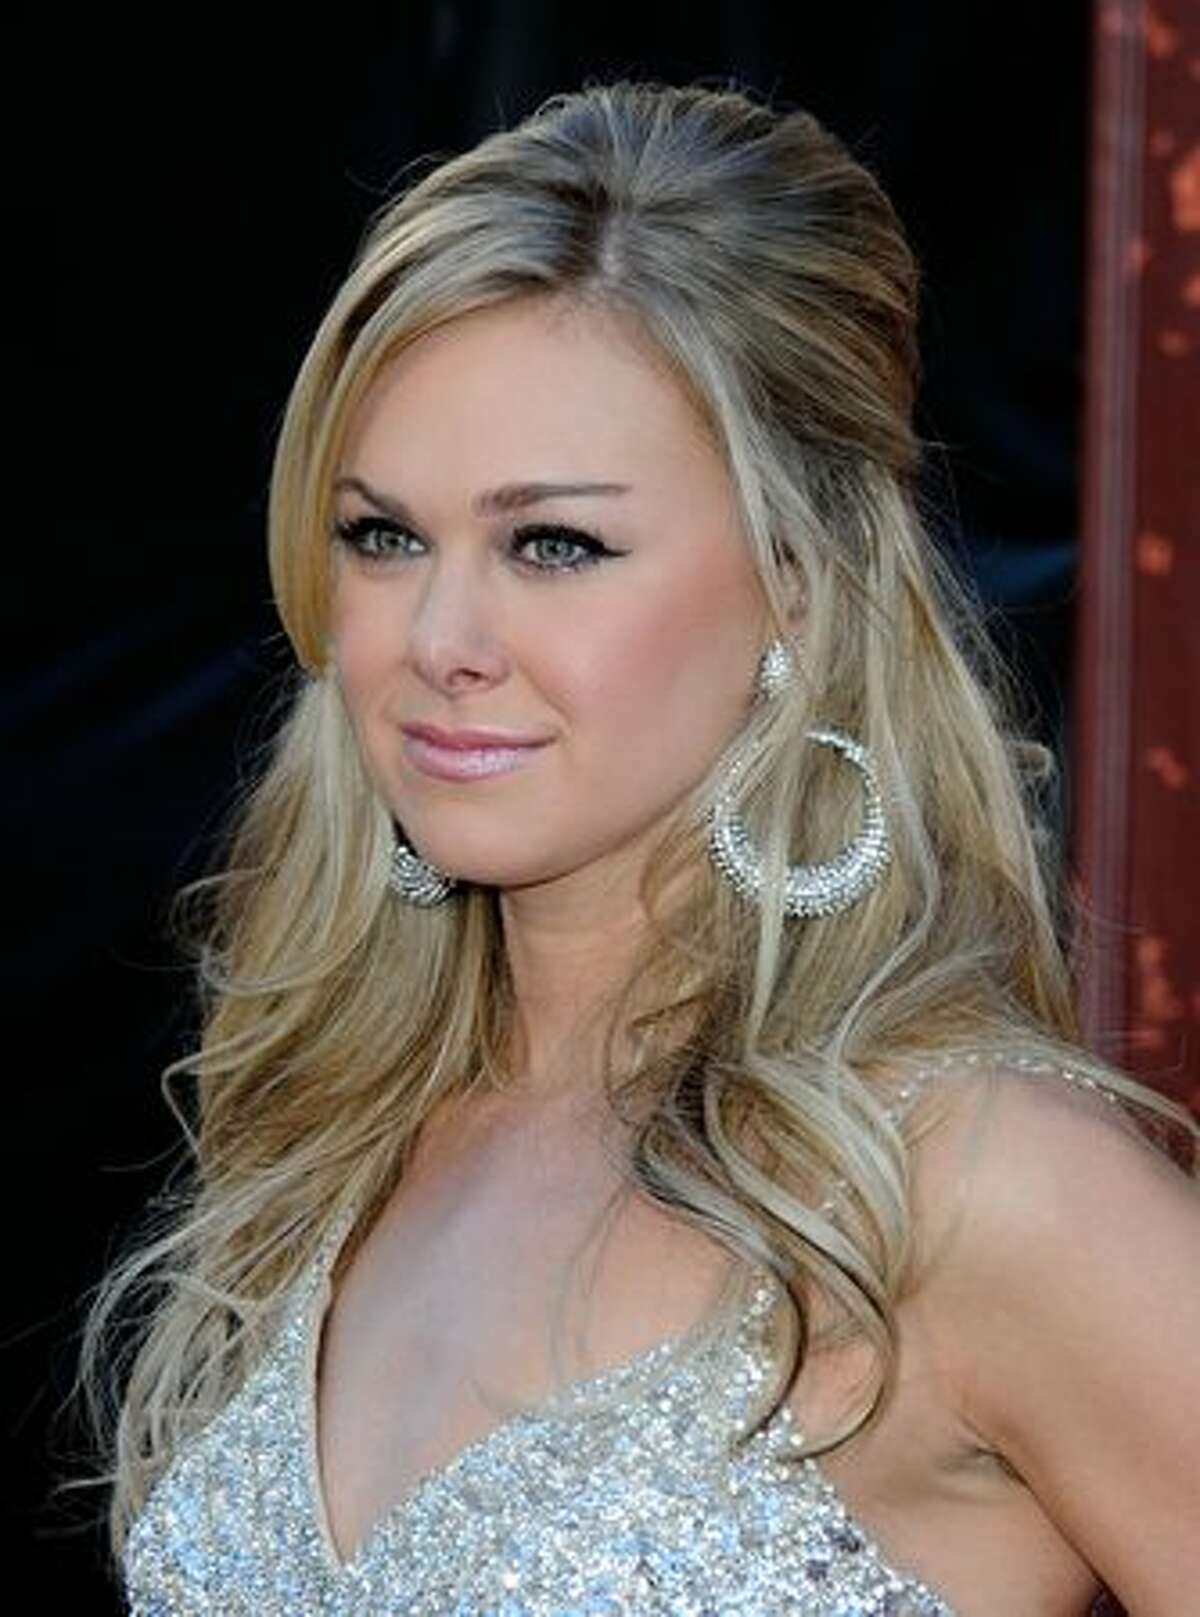 Singer Laura Bell Bundy arrives at the American Country Awards 2010 held at the MGM Grand Garden Arena in Las Vegas, Nevada.